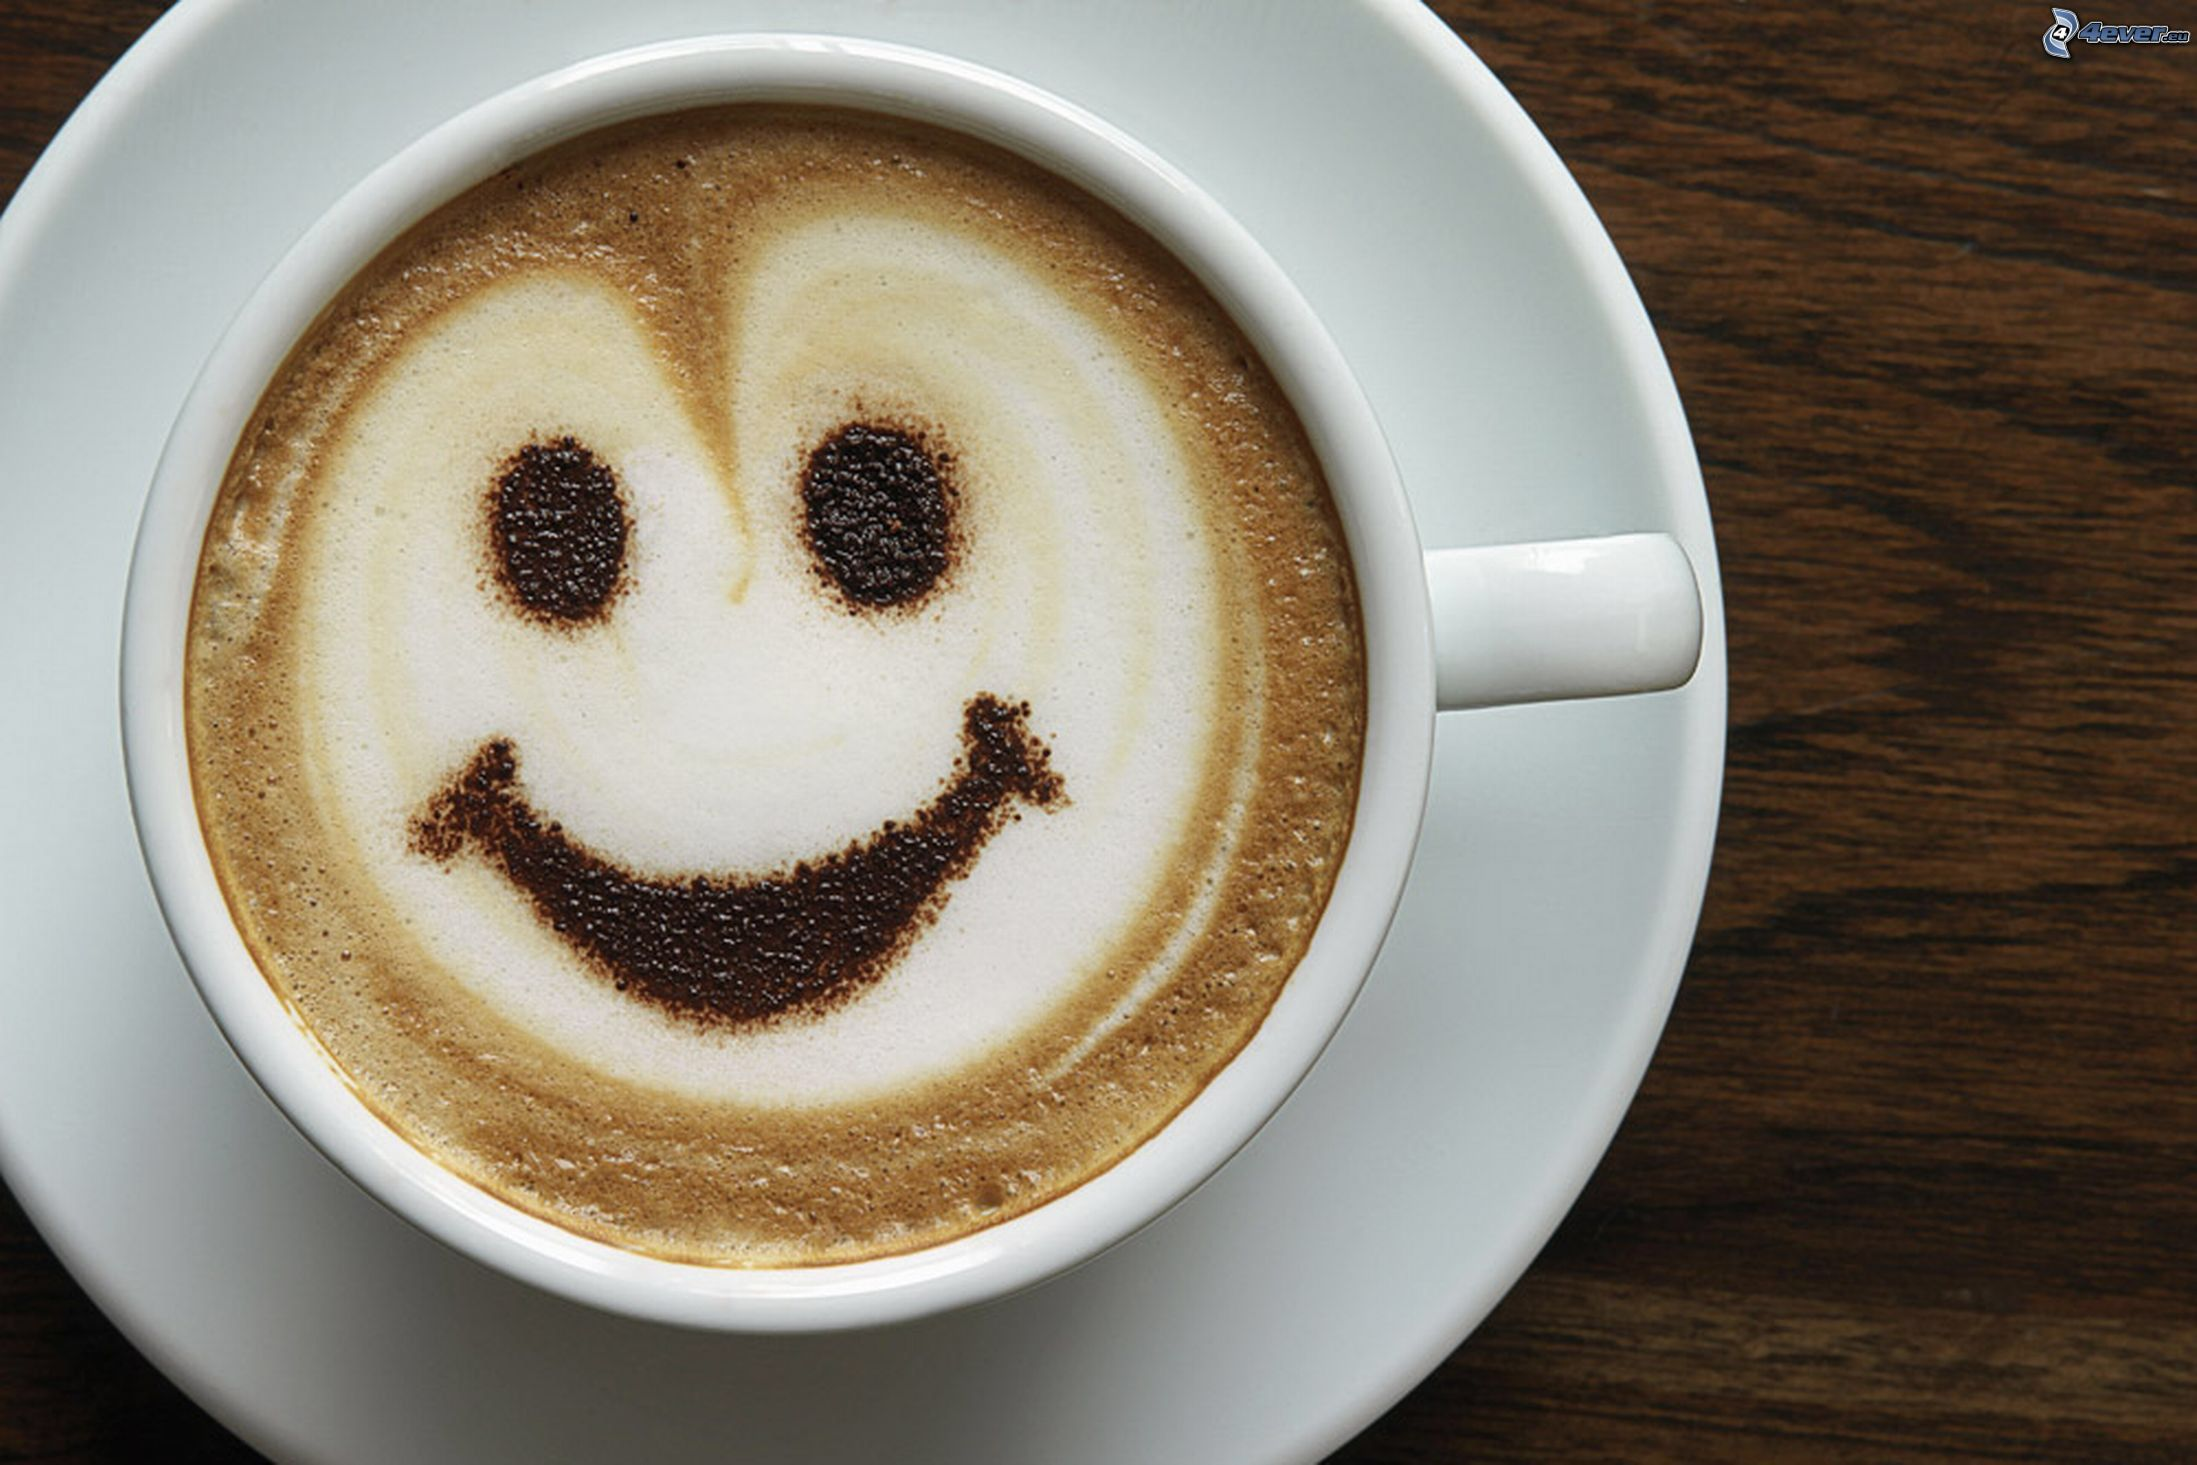 tasse-kaffee-smiley-latte-art-219205